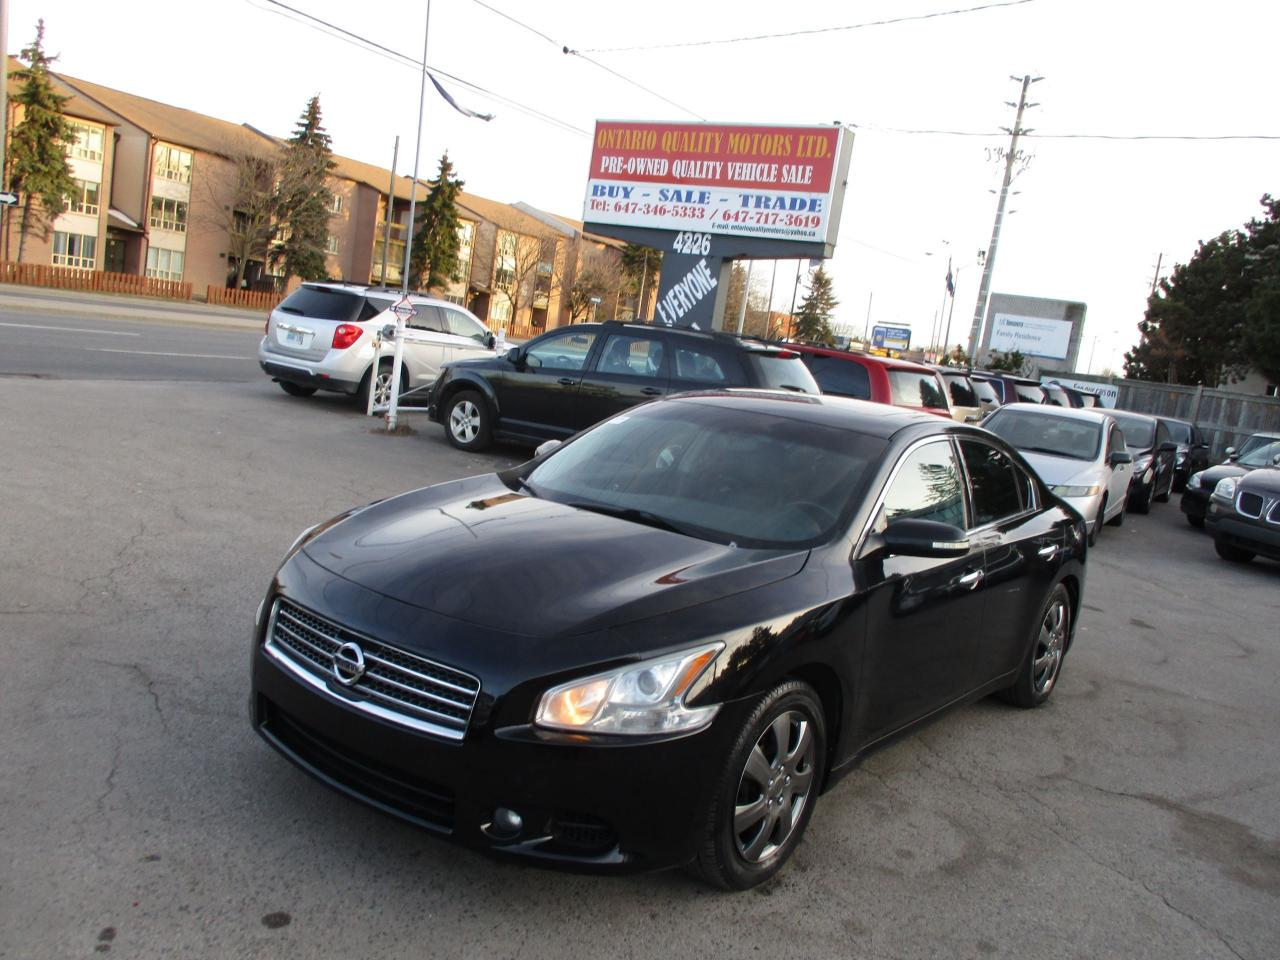 in s nissan lot maxima mi carfinder ionia left en auto sale for auctions certificate view copart online title on blue of